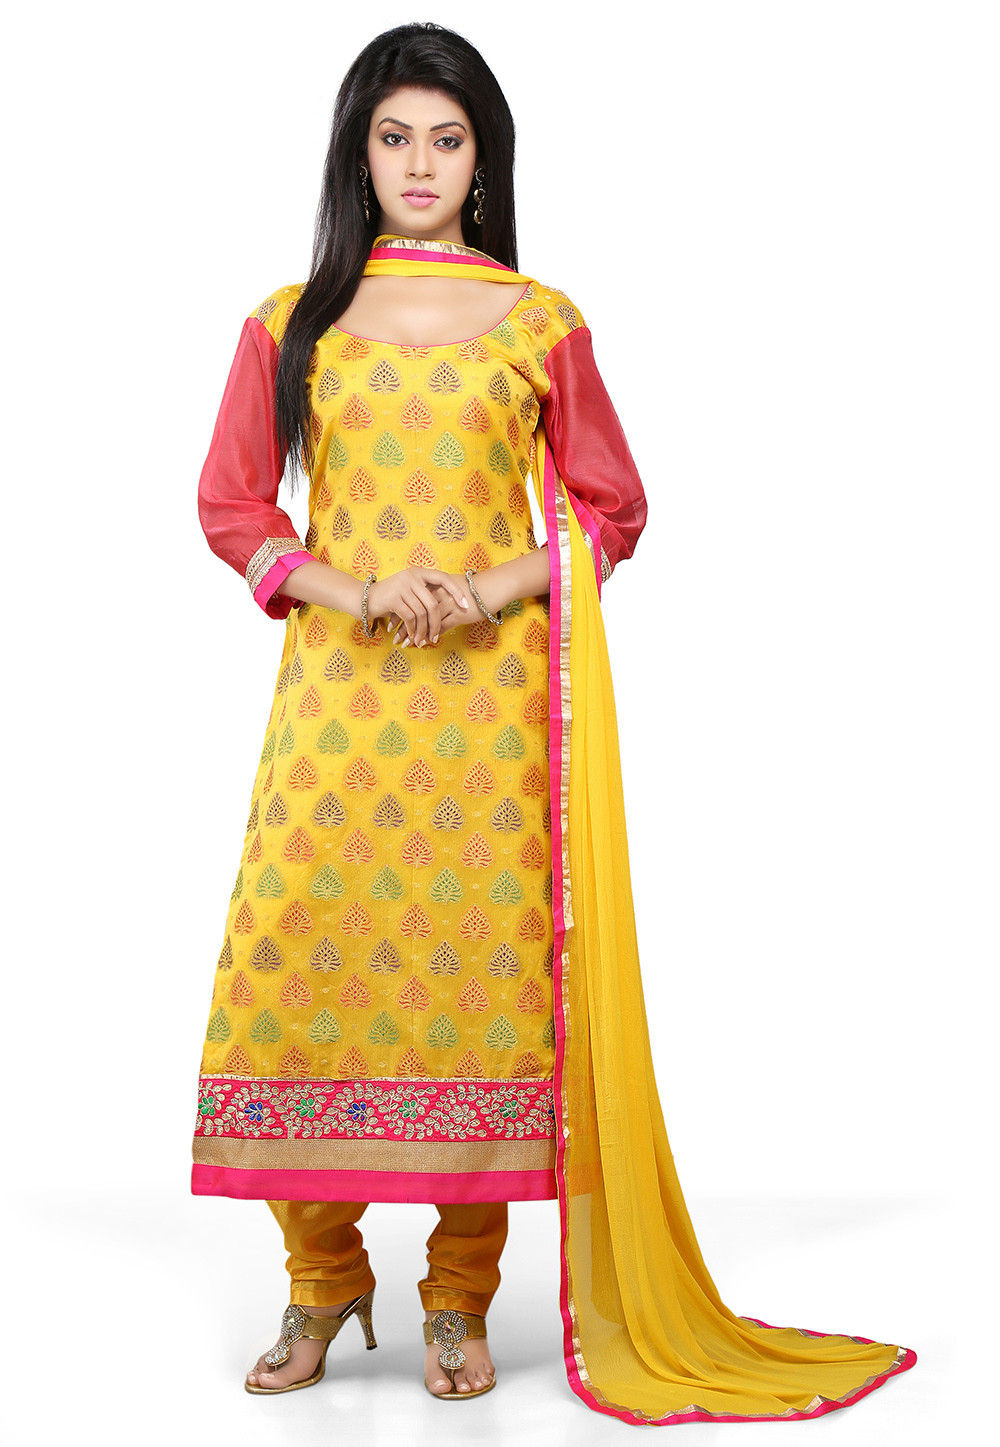 Straight Cut Suit In Yellow And Coral